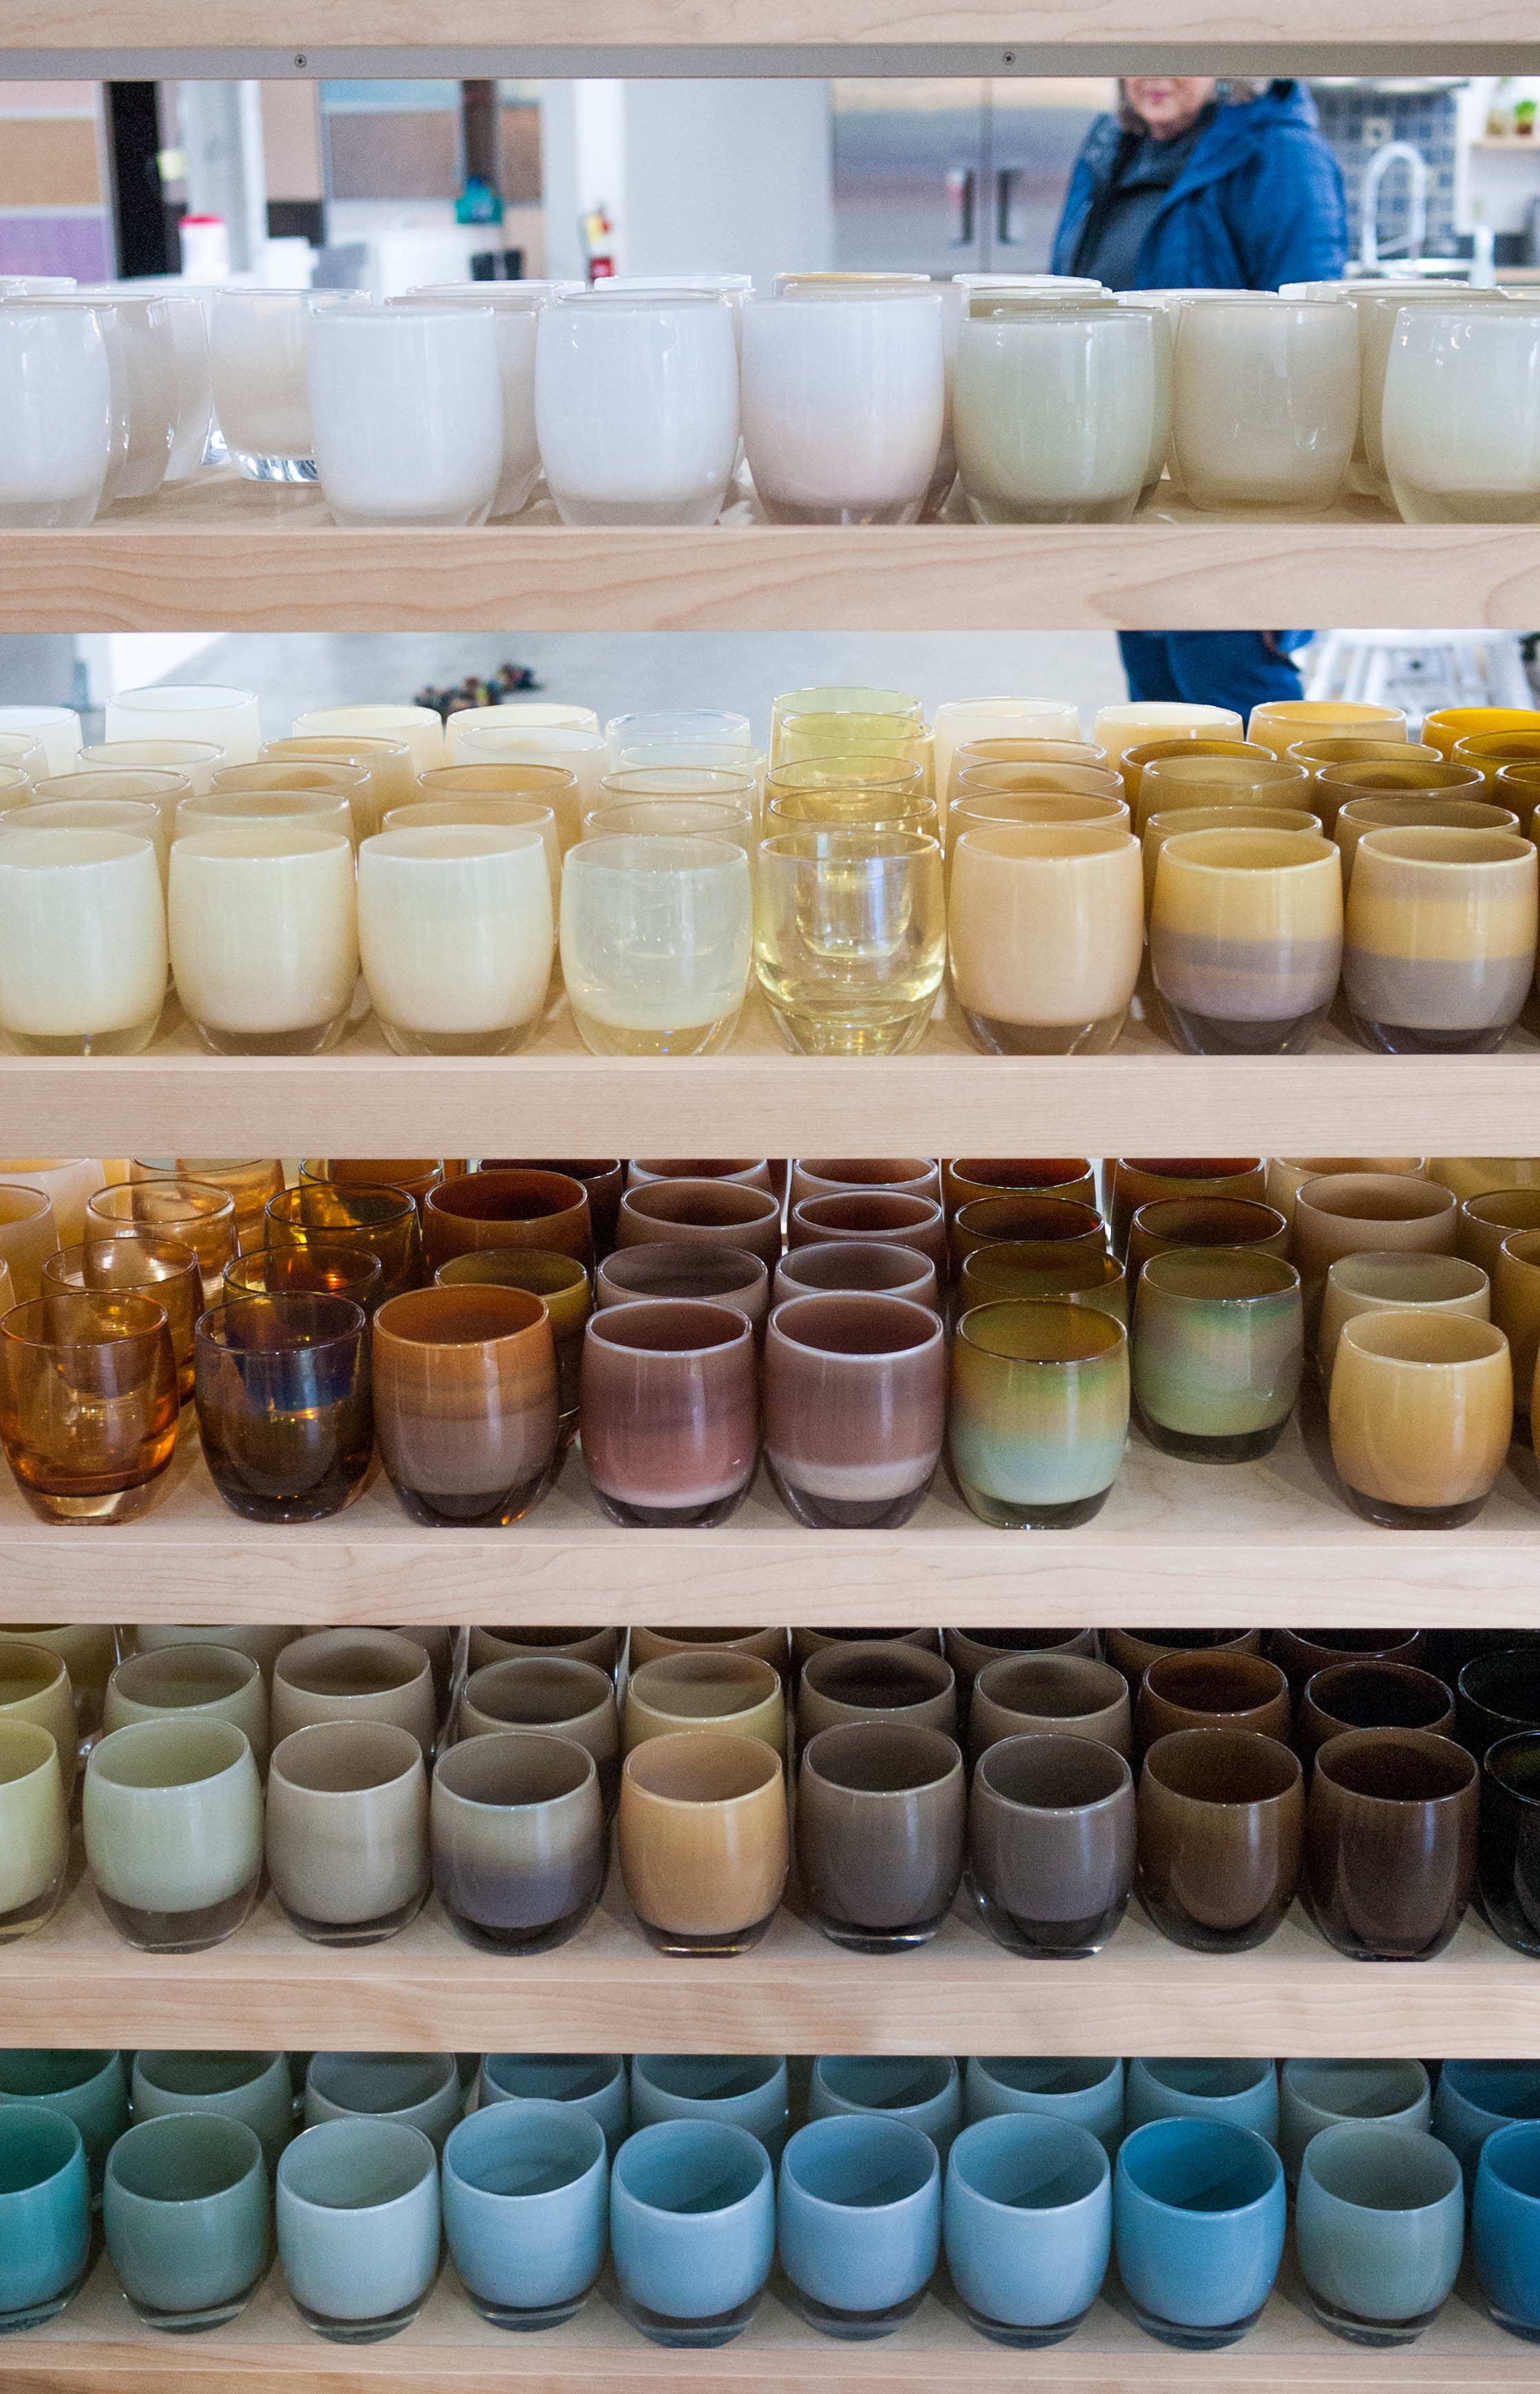 Each finished glassybaby if quality checked for stability, clarity, size and overall look. Here, finished glassbabys are ready to find new homes!